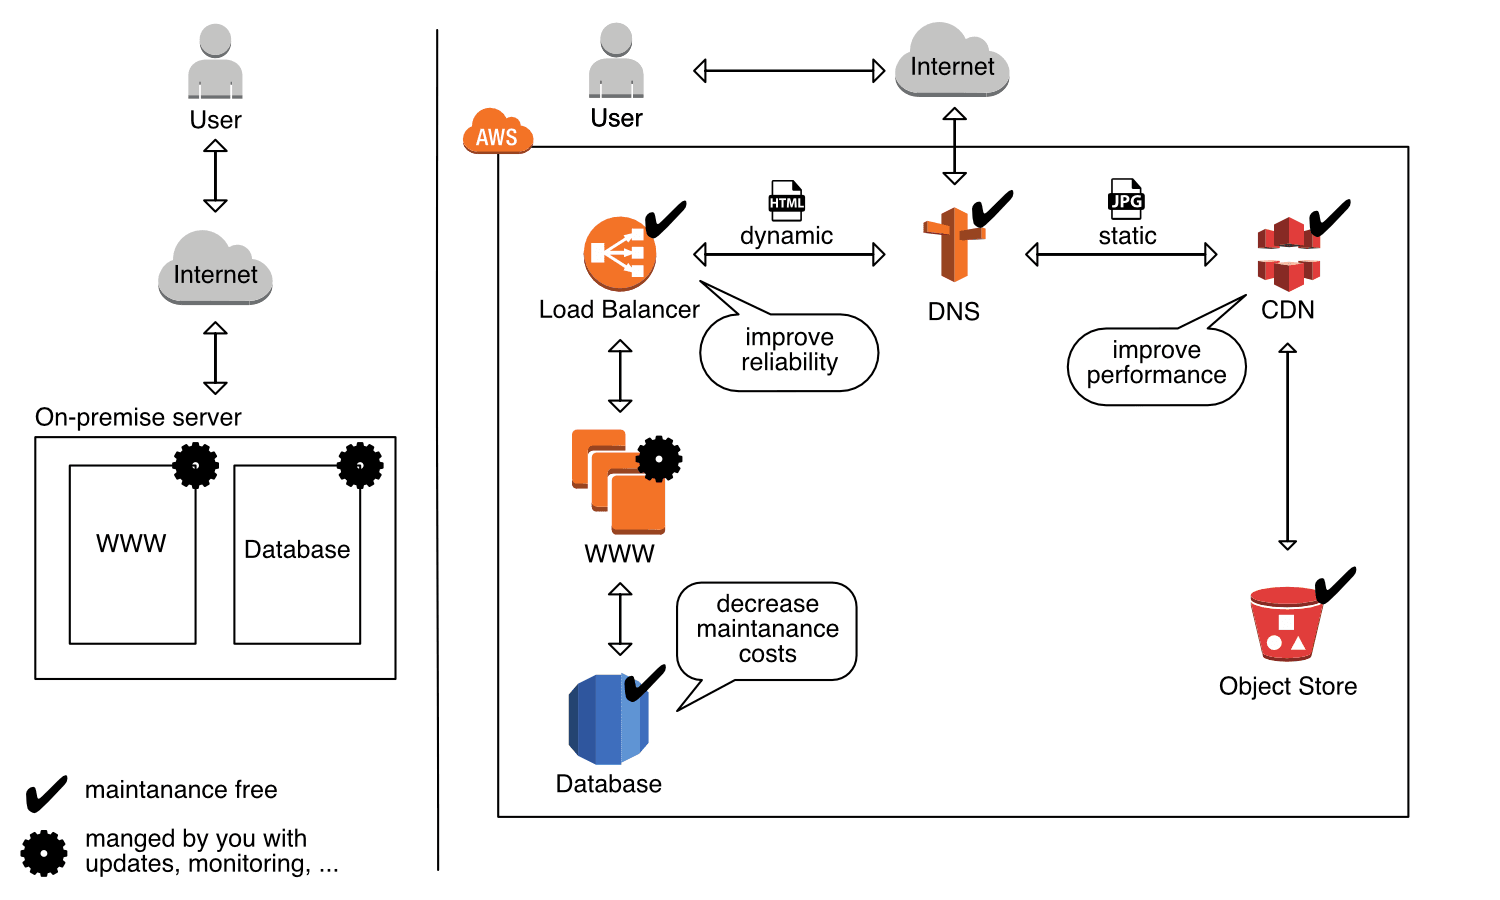 Figure 2: Comparison of how to run a web shop on-premise and on AWS and benefit from the cloud